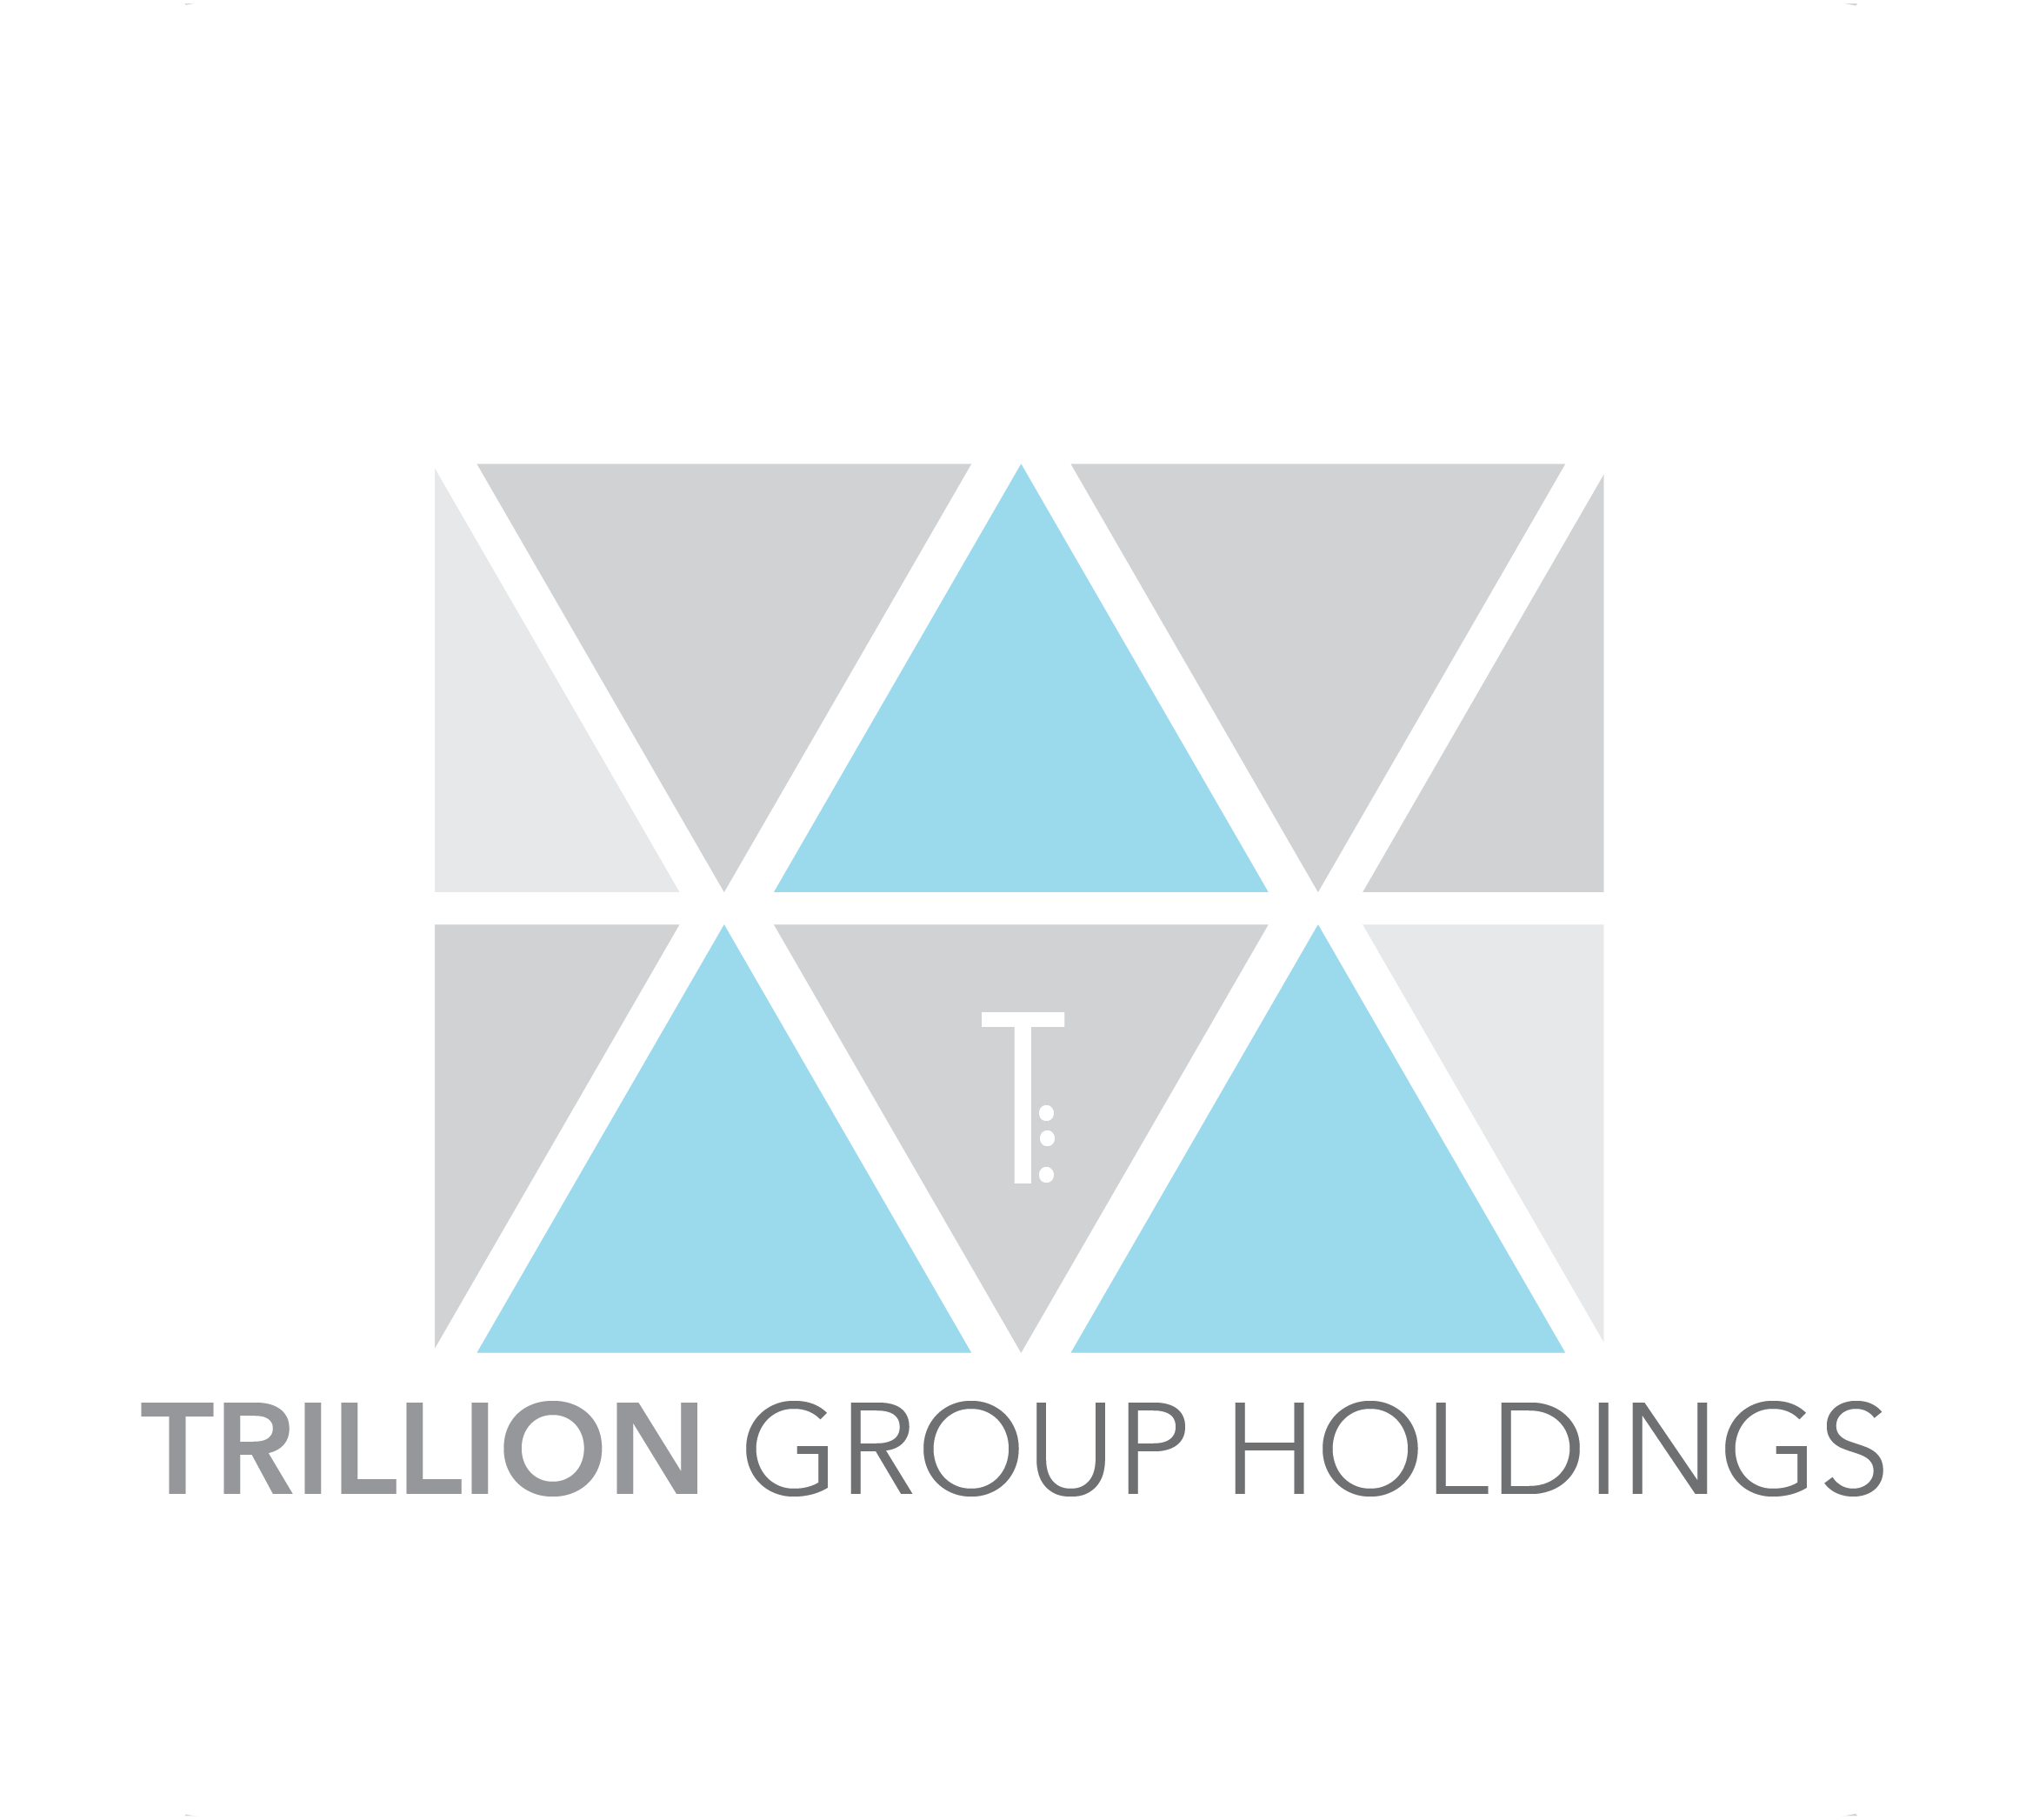 Trillion Group Holdings Pte Ltd